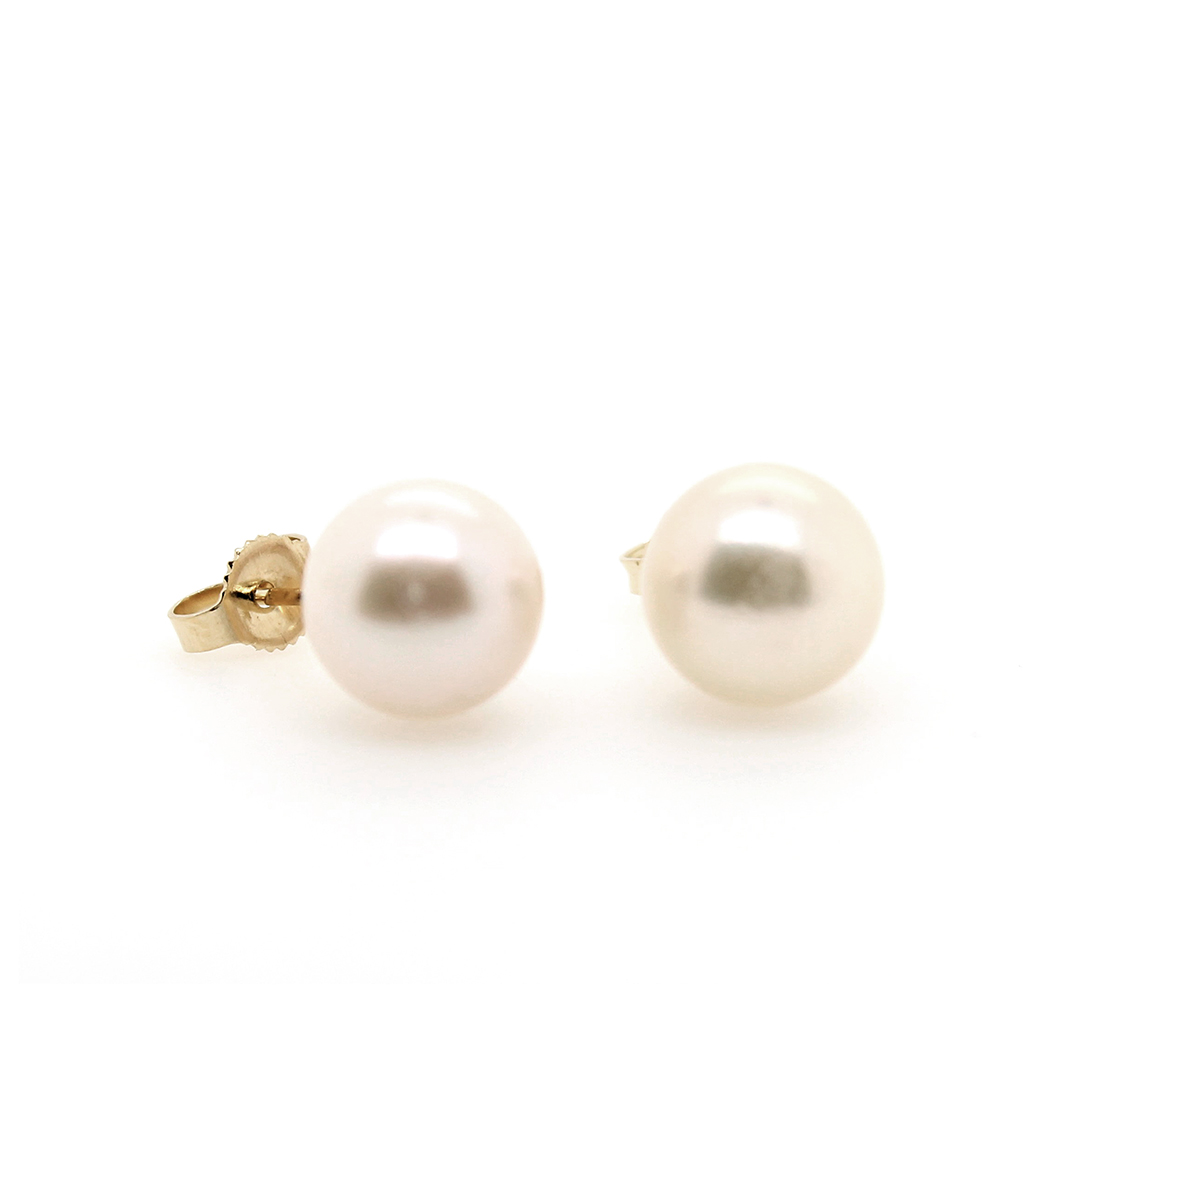 Vintage 14 Karat Gold White Akoya Pearl Earrings